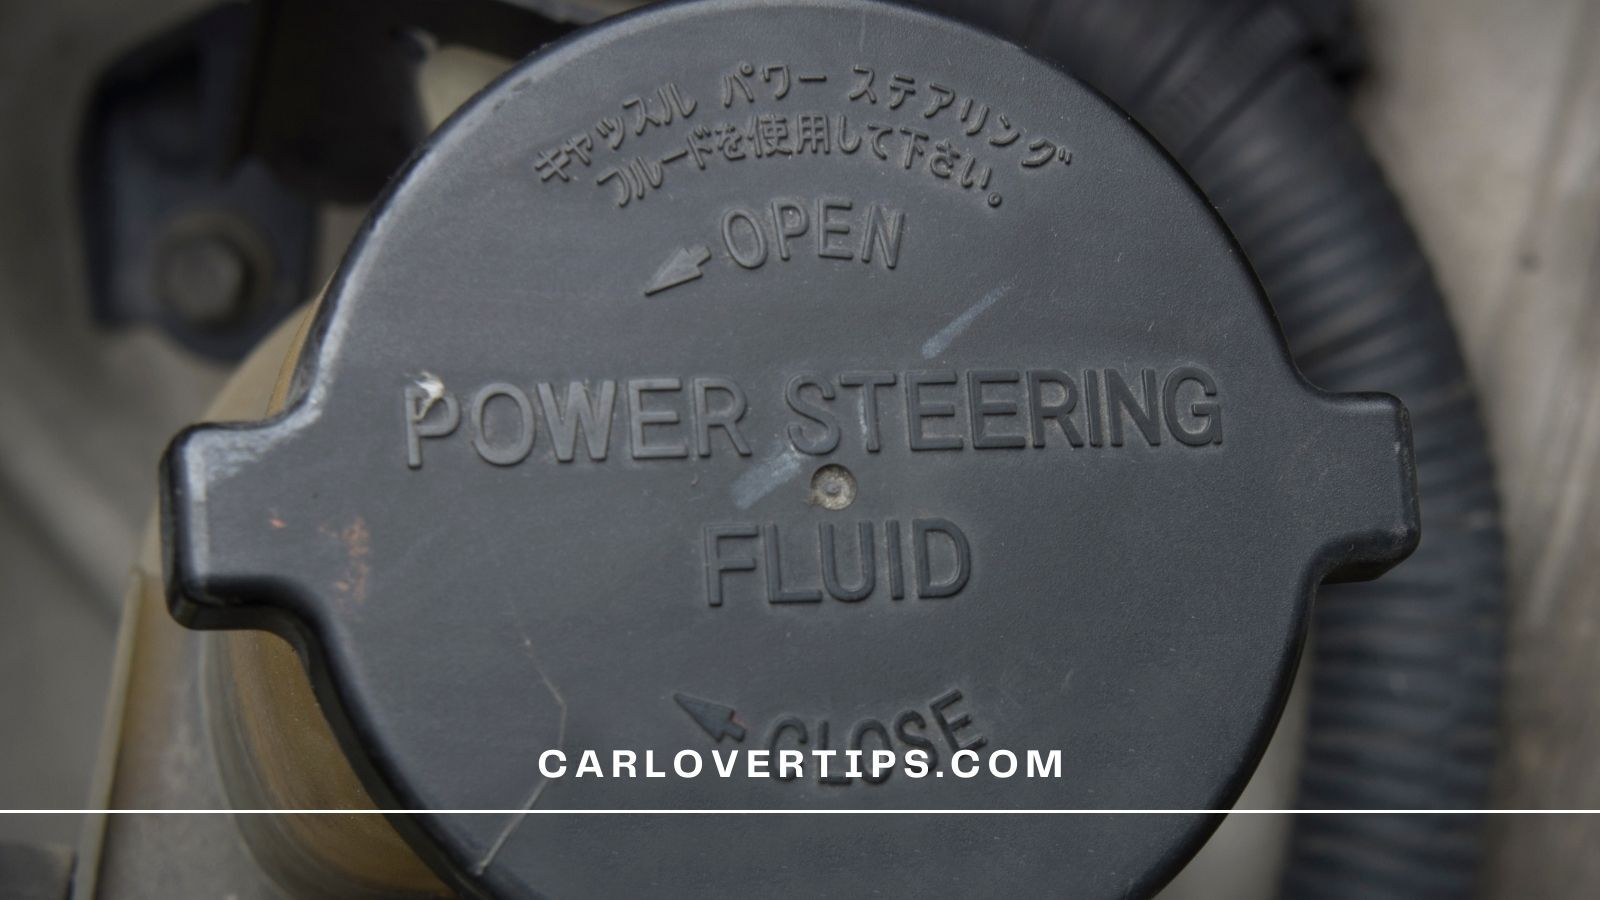 Replace Power Steering Fluid Every 70000 to 100000 Miles Car Lover Tips